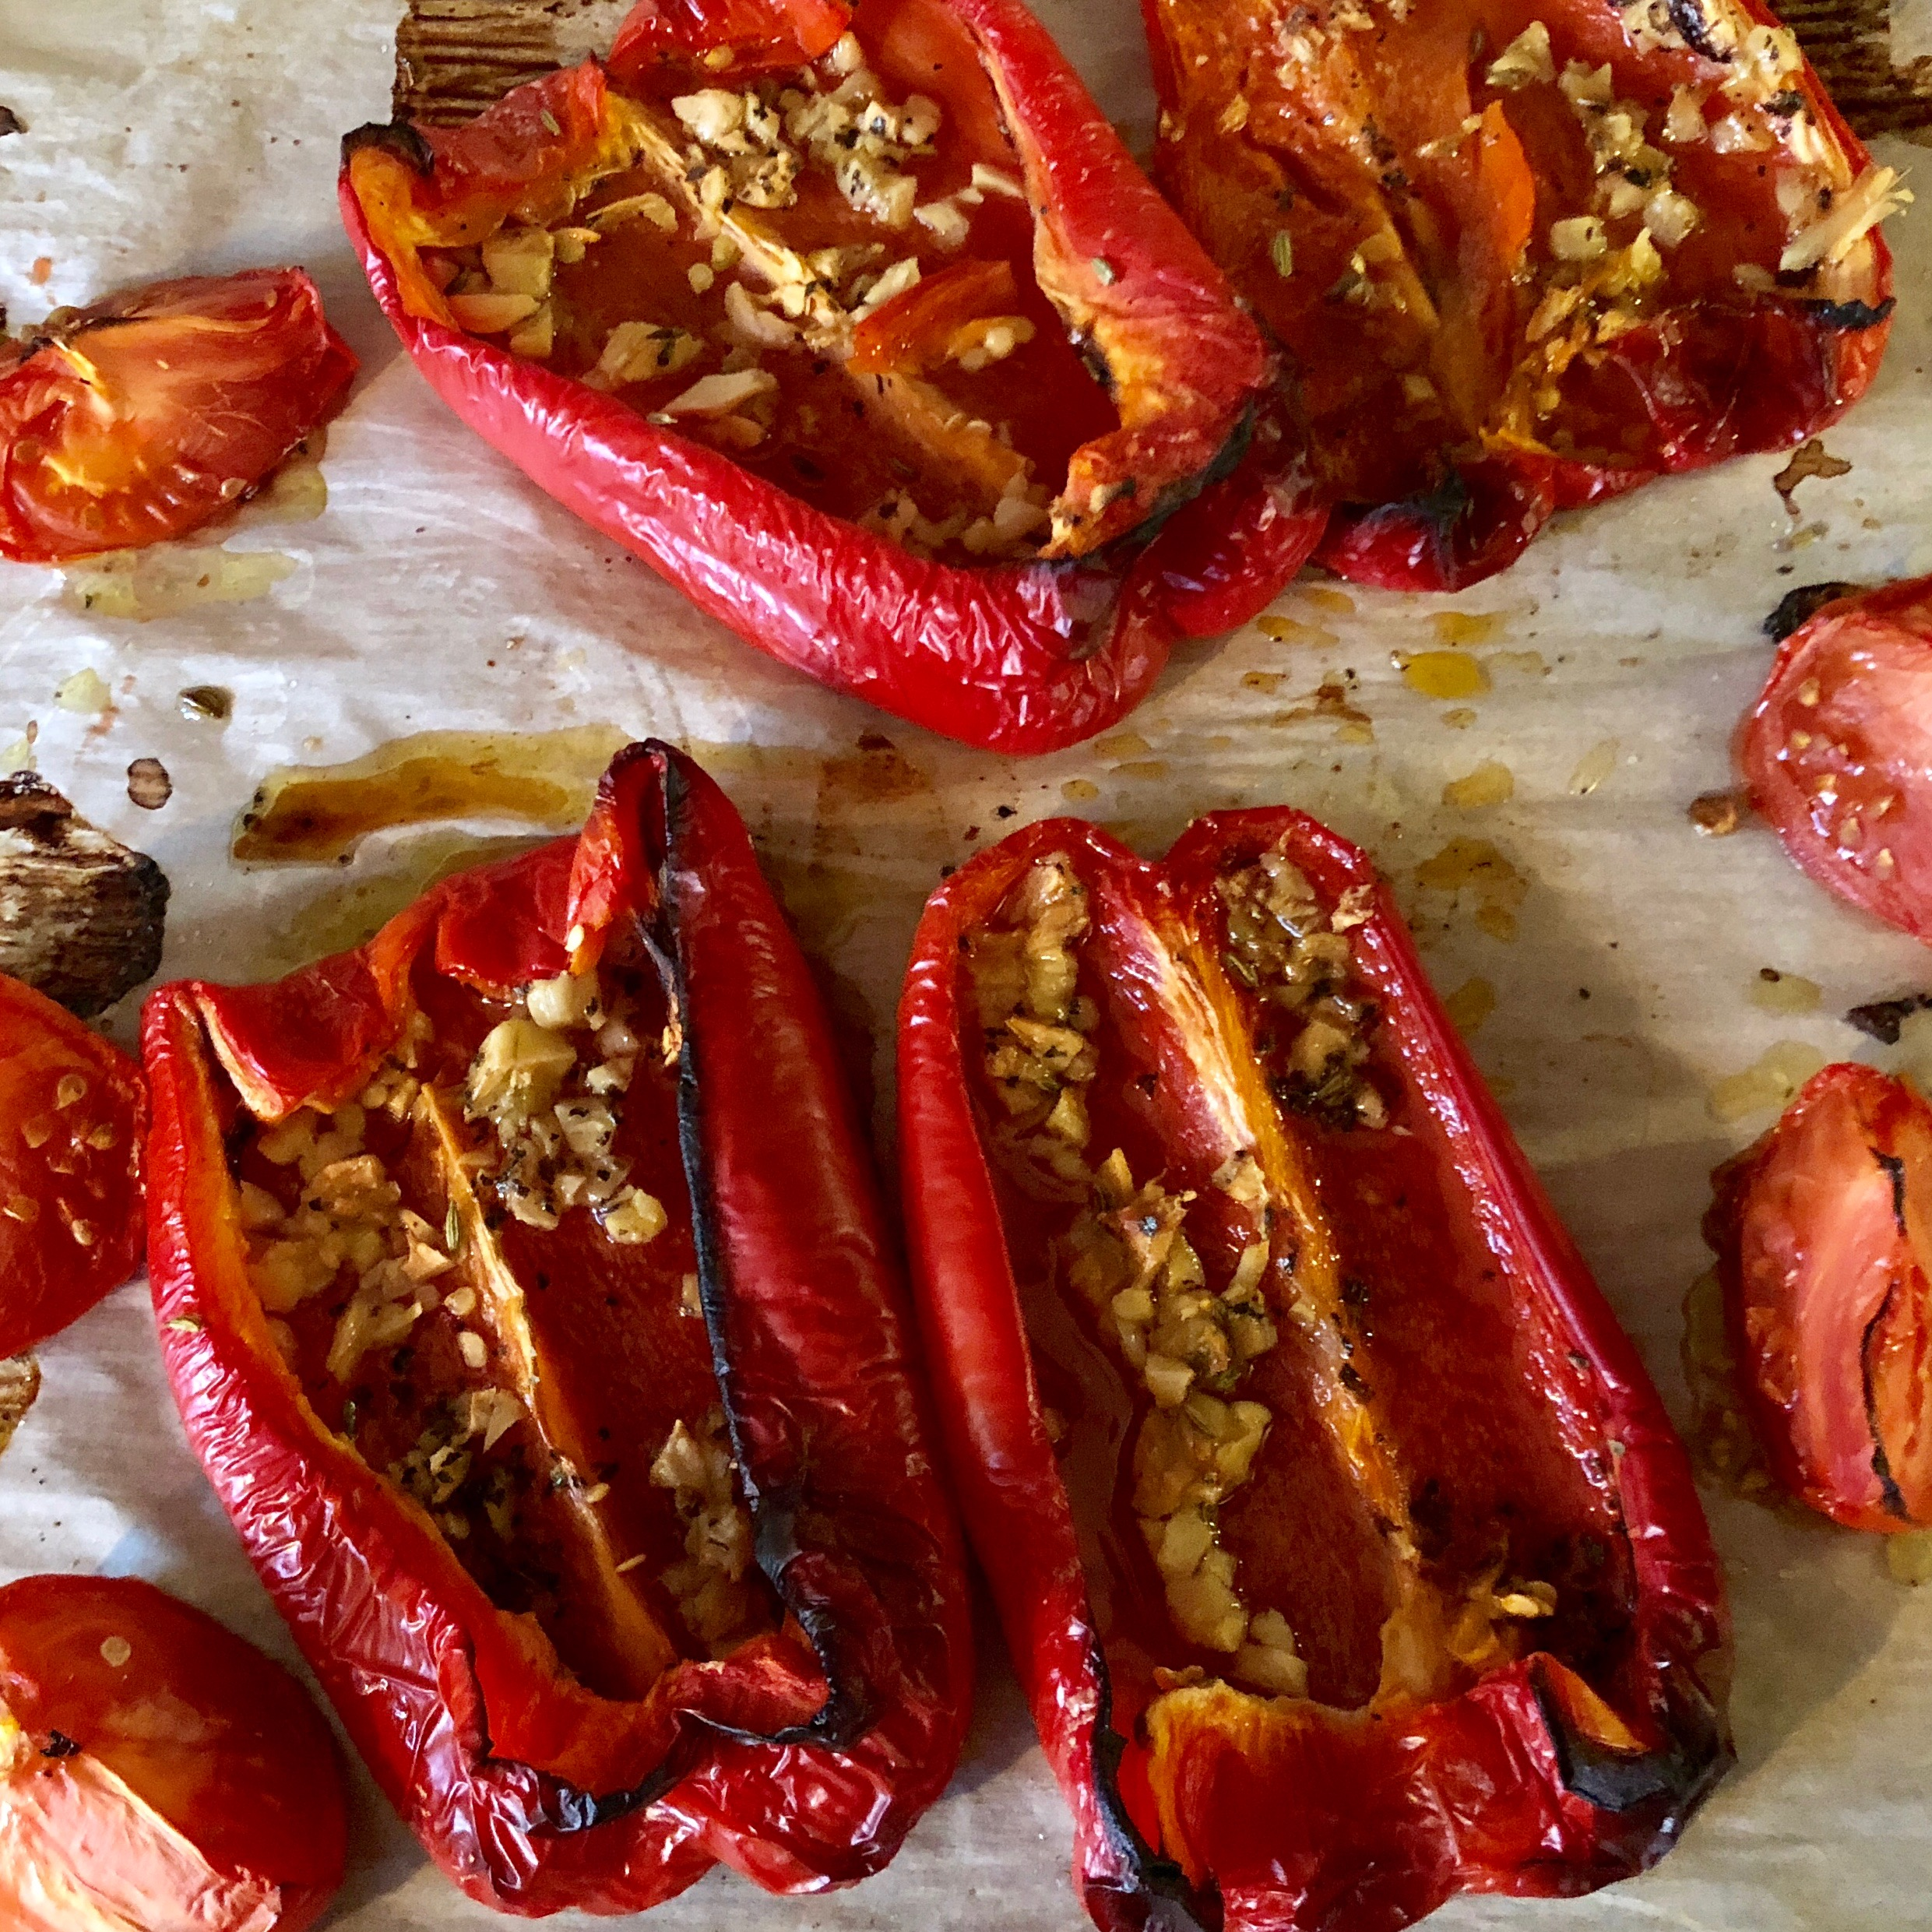 The peppers were drizzled with a little olive oil and topped with crushed garlic.